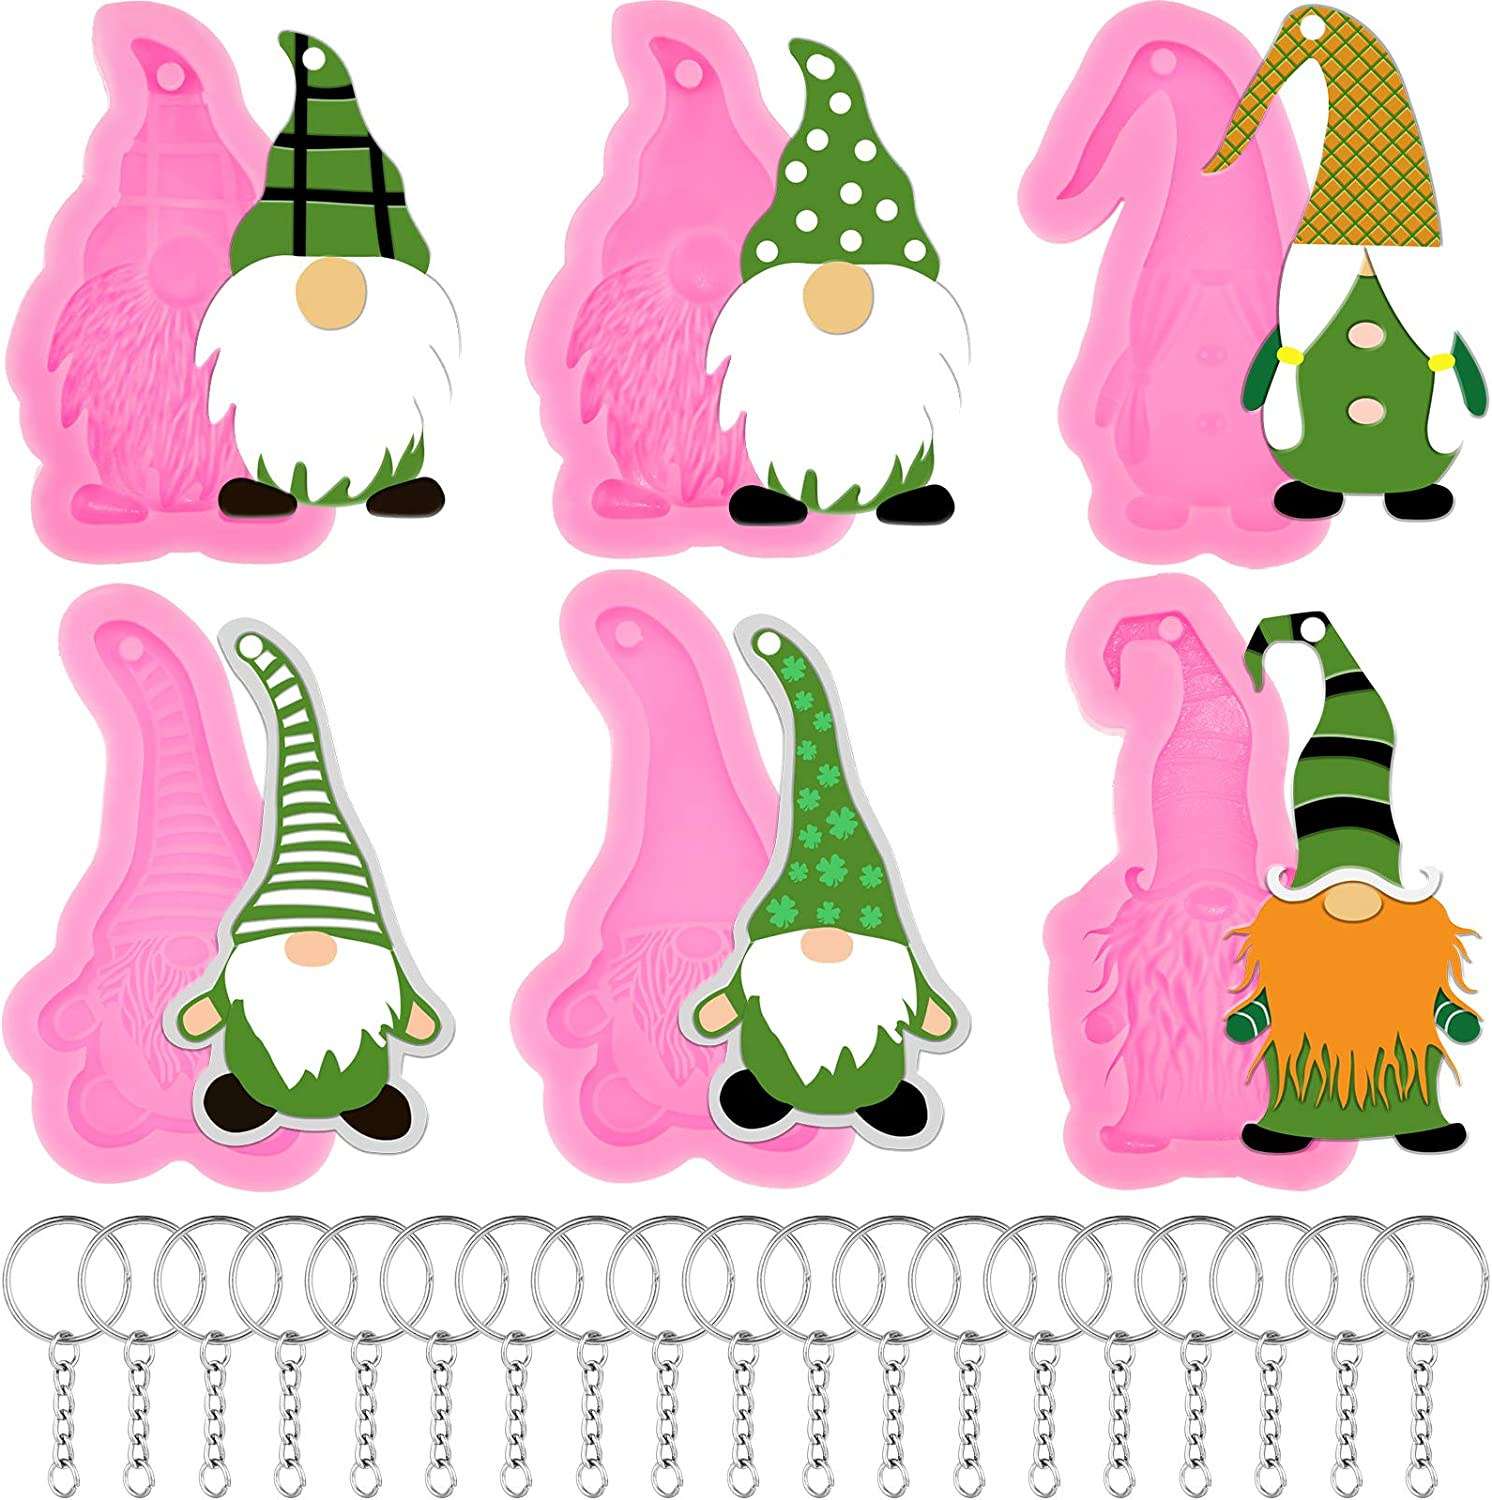 26 Pieces Gnome Shape Silicone Mold with Hole Elf Shape Keychain Silicone Mold with Key Rings for Valentine St. Patrick's Day Easter DIY Tag Pendant Keychain Decoration Homemade Dessert